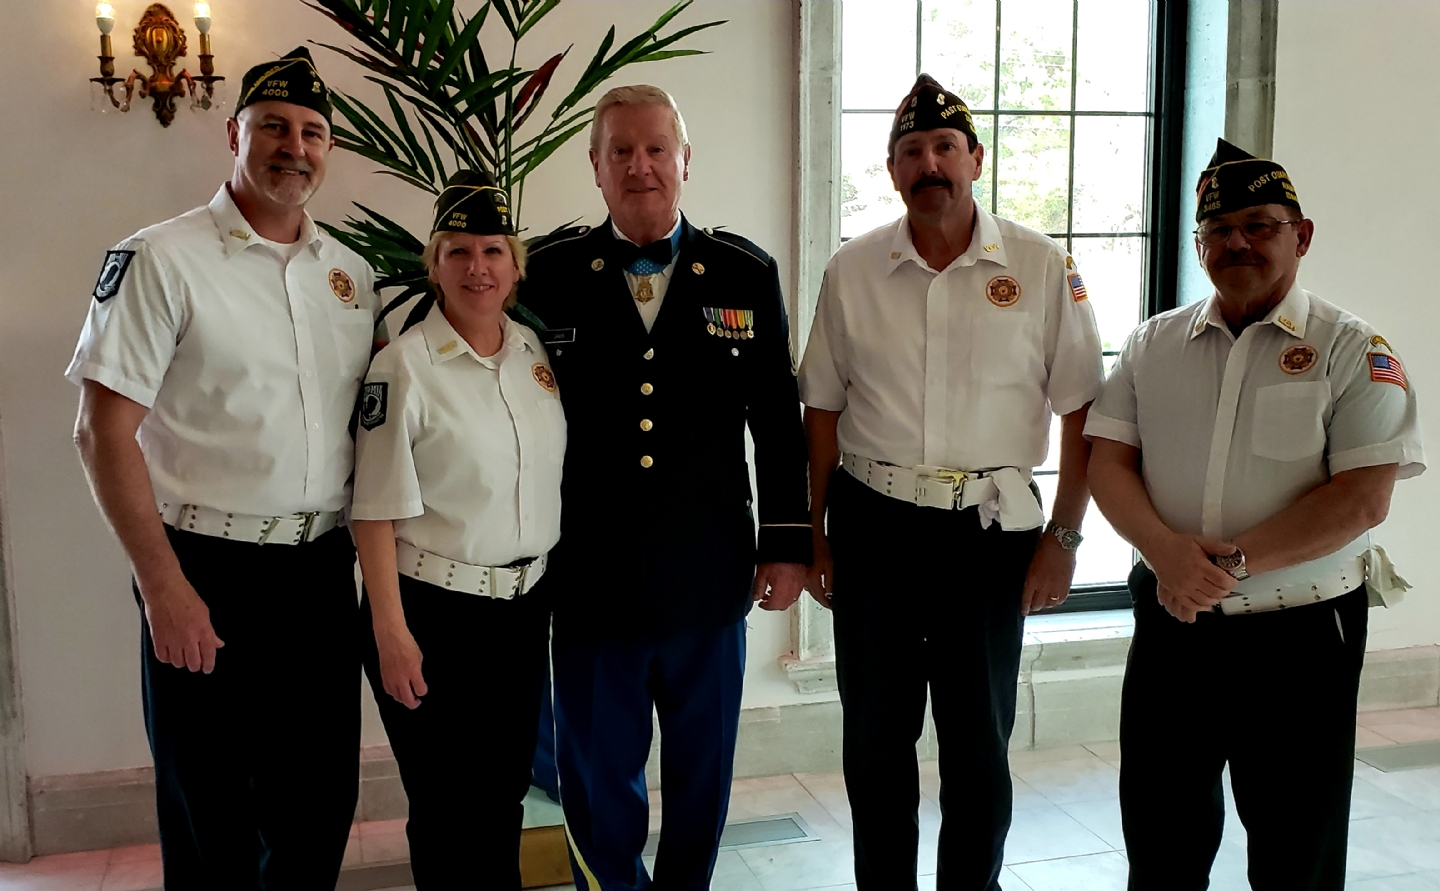 Medal of Honor recipient Sammy Lee Davis with District 5 Honor Guard